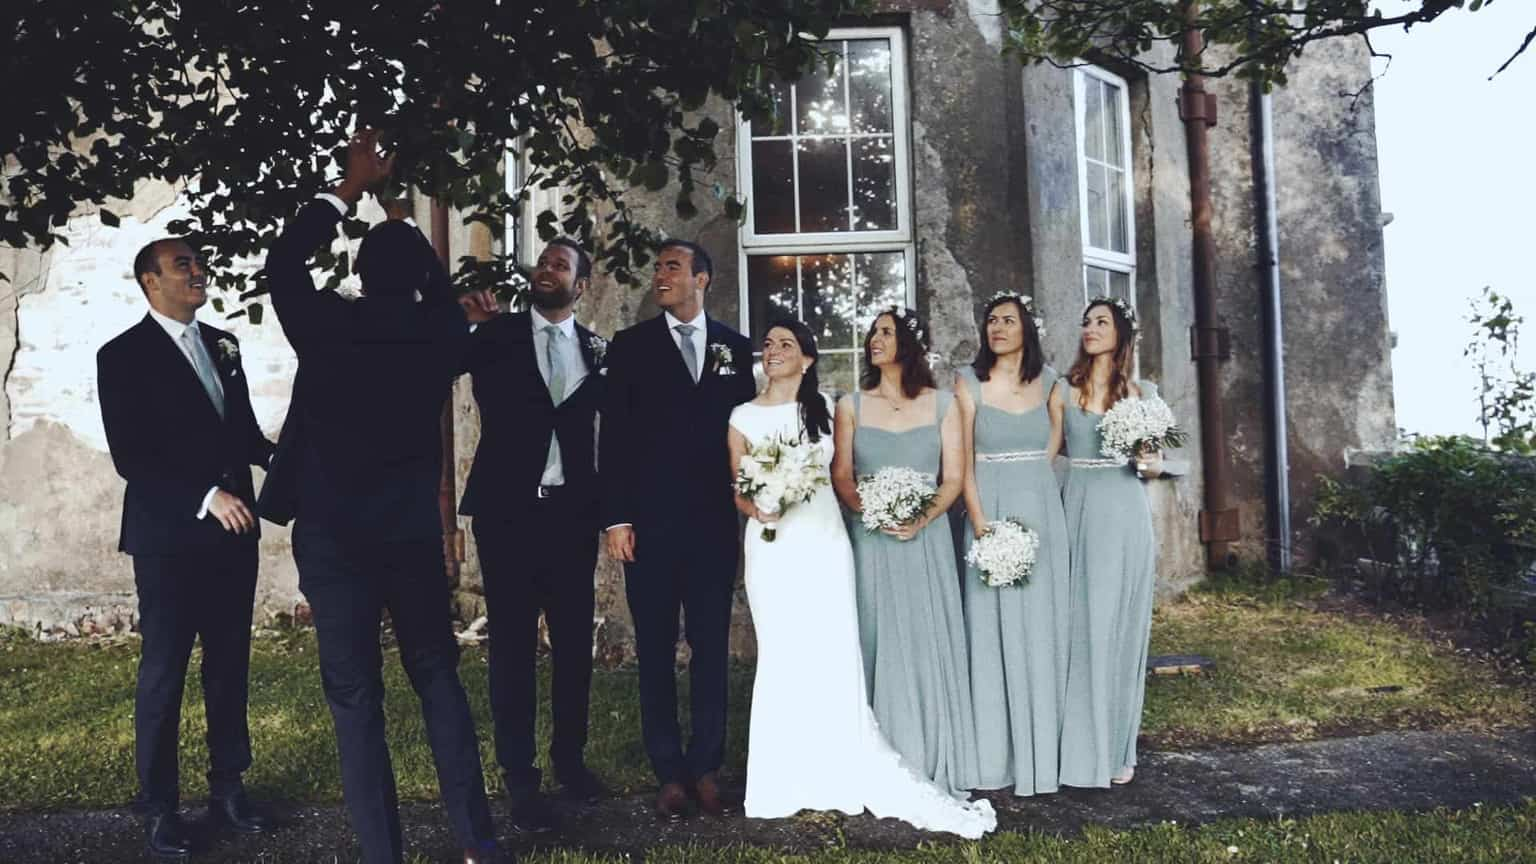 Brides maids and grooms mans on family picture.